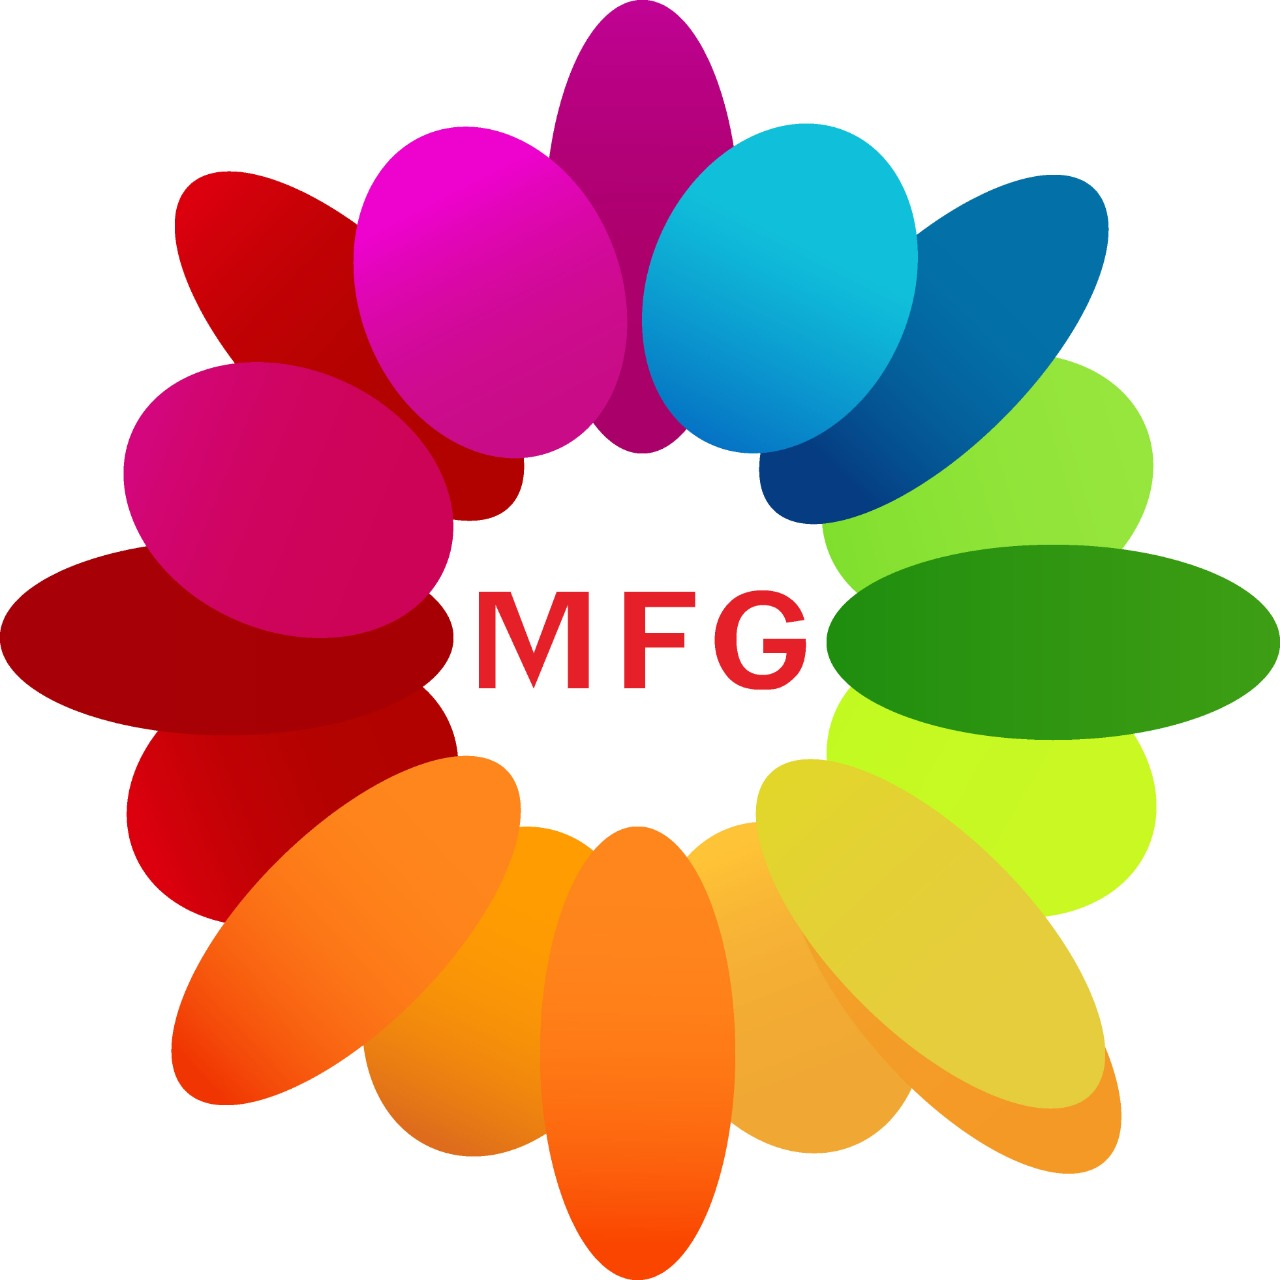 Bed of 100 pink roses